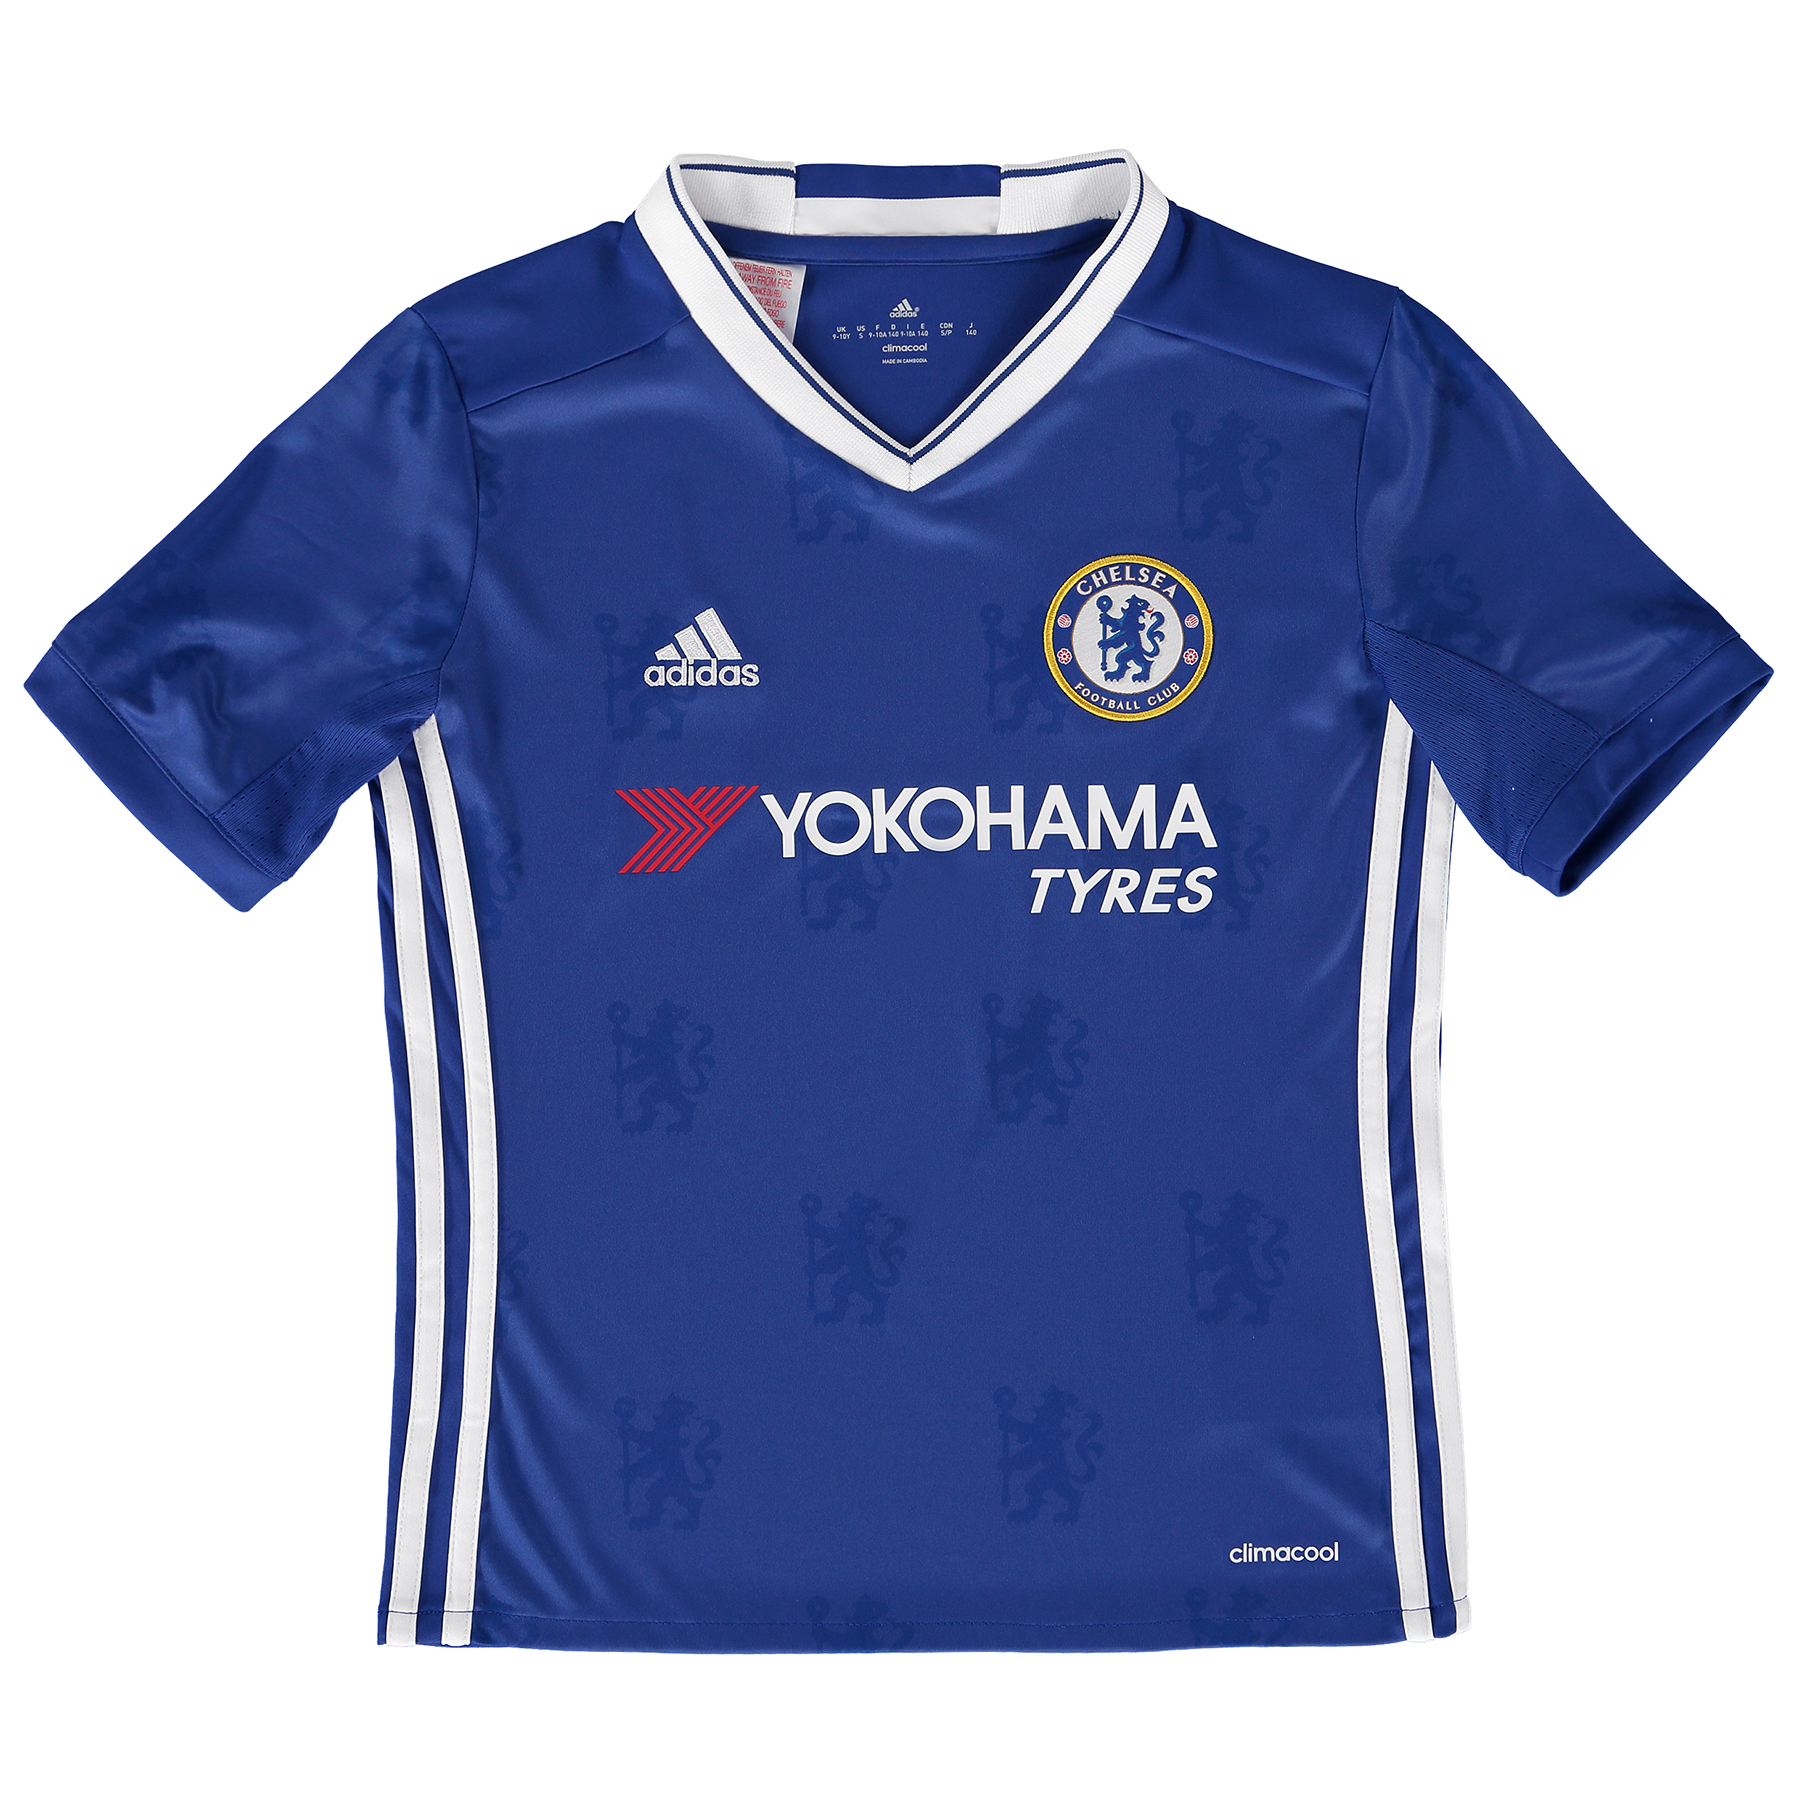 Chelsea Home Shirt 2016-17 - Kids   Inspired by tradition and shaped by legacy, the official Chelsea Home Shirt 2016-17 - Kids restores a classic Stamford Bridge image, with its vintage v-collar drawing allusion to Chelsea sides of yesteryear.   With the club crest's central lion motif forming the basis of a unique, all-over pattern print, the 2016-17 Chelsea kids' home jersey's Three Stripe branding features in a contemporary side placement, completing a winning mix of old and new for the Blues' renewed title challenge.   Benefits:   Climacool® heat and moisture management Printed fabric Club crest: woven badge Engineered Chelsea FC sign off on collar 100% recycled polyester